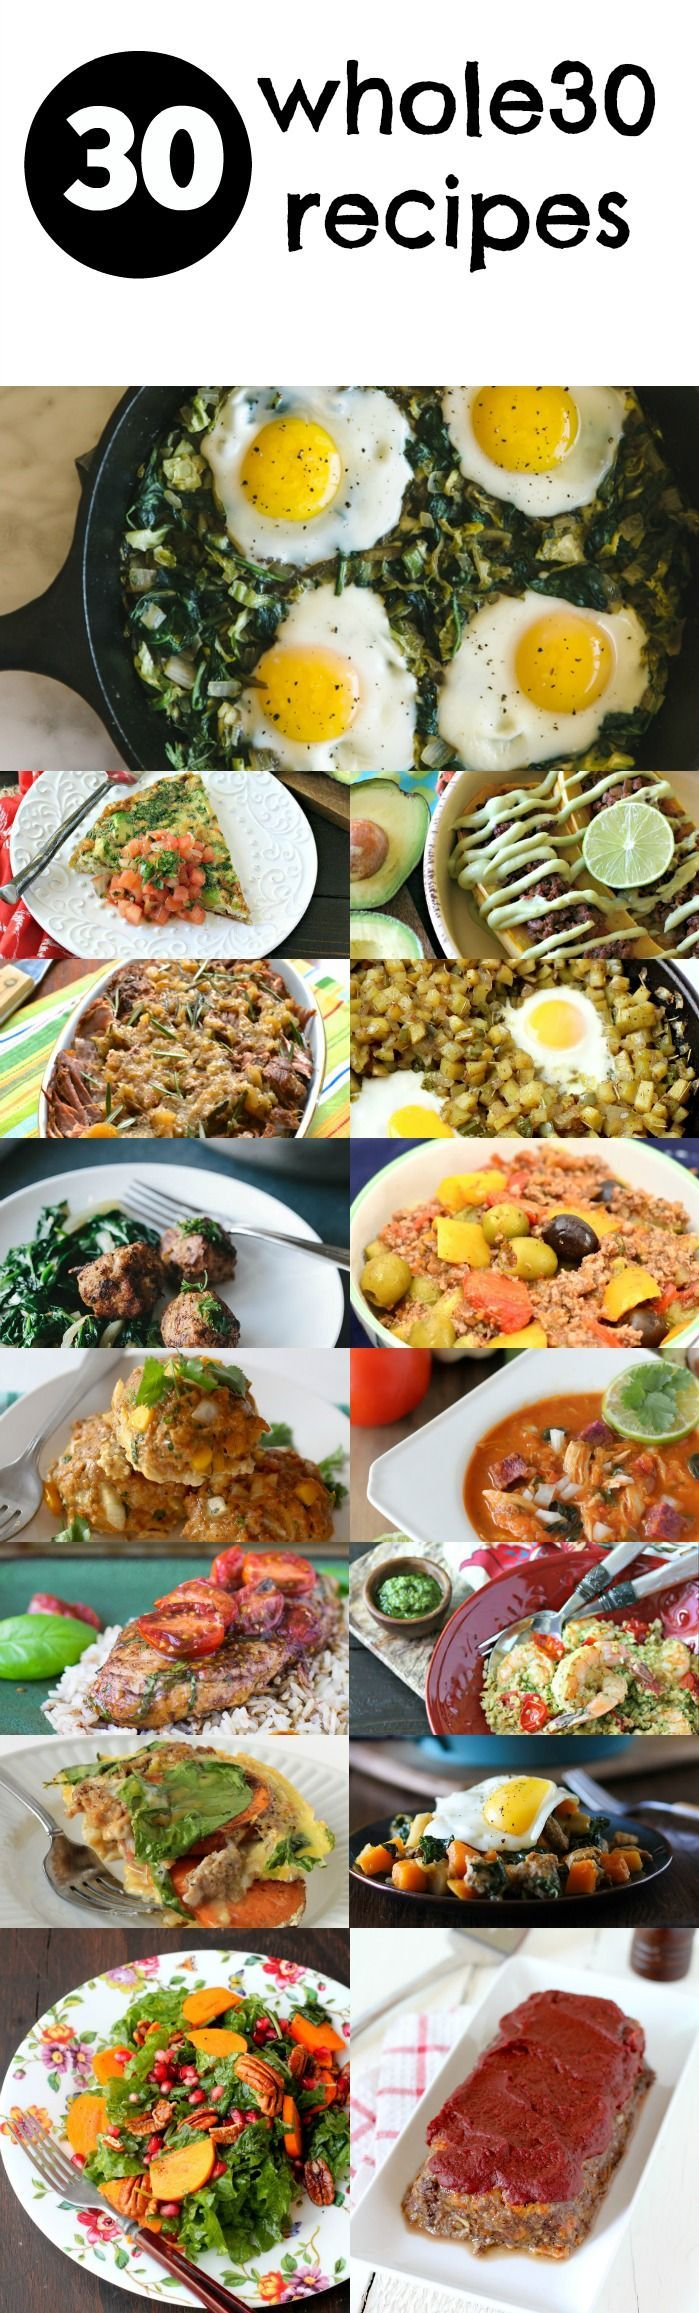 30 Whole30 Recipes to help you kickstart your 2016! Including Whole30 Breakfast Recipes, Whole30 Lunch Recipes, and Whole30 Dinners!